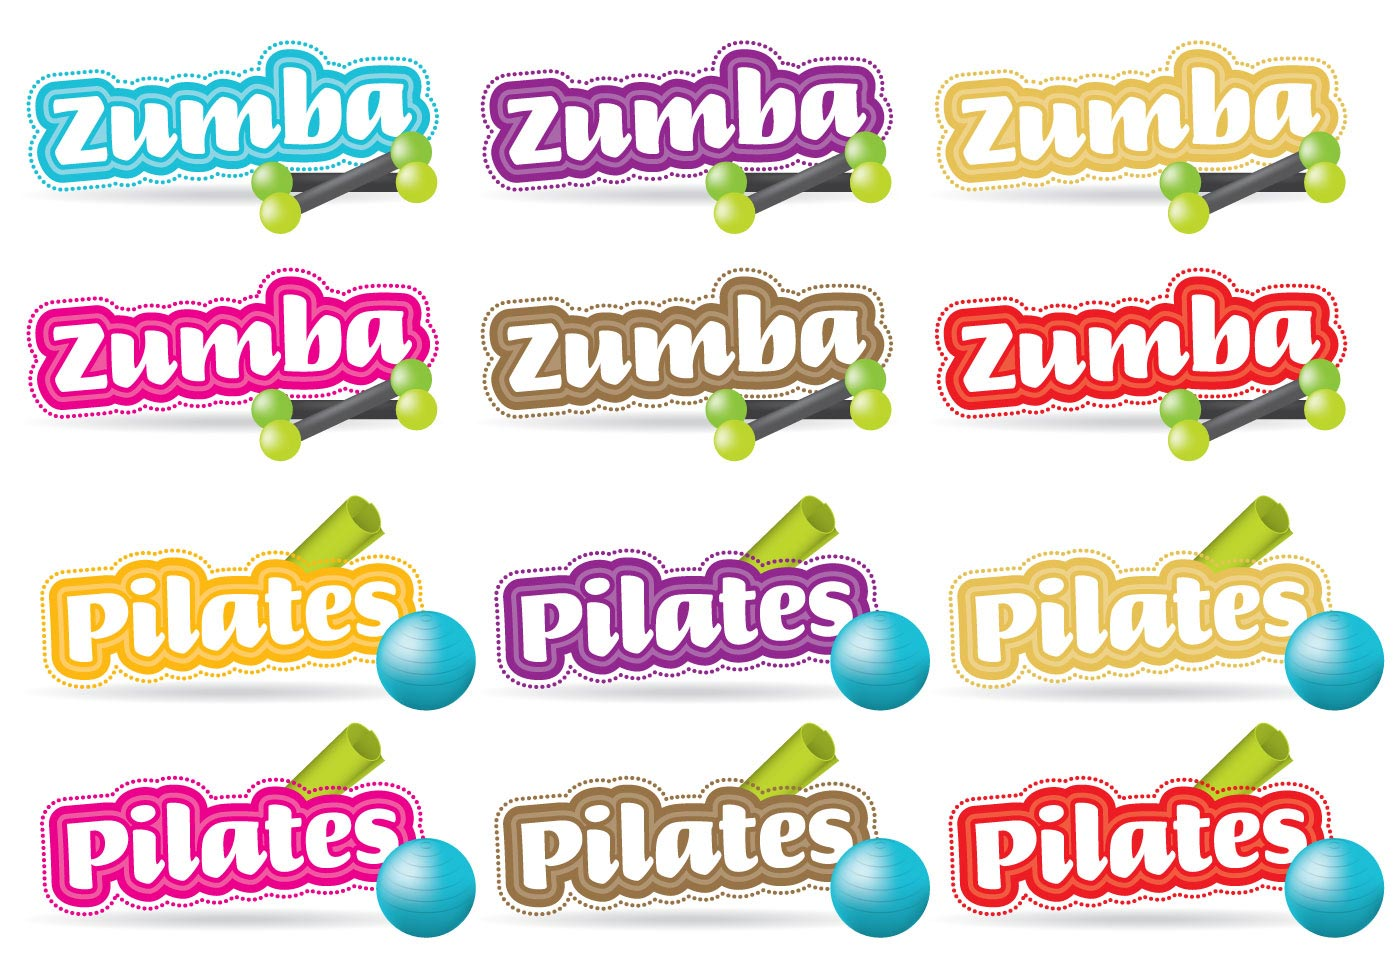 zumba and pilates titles